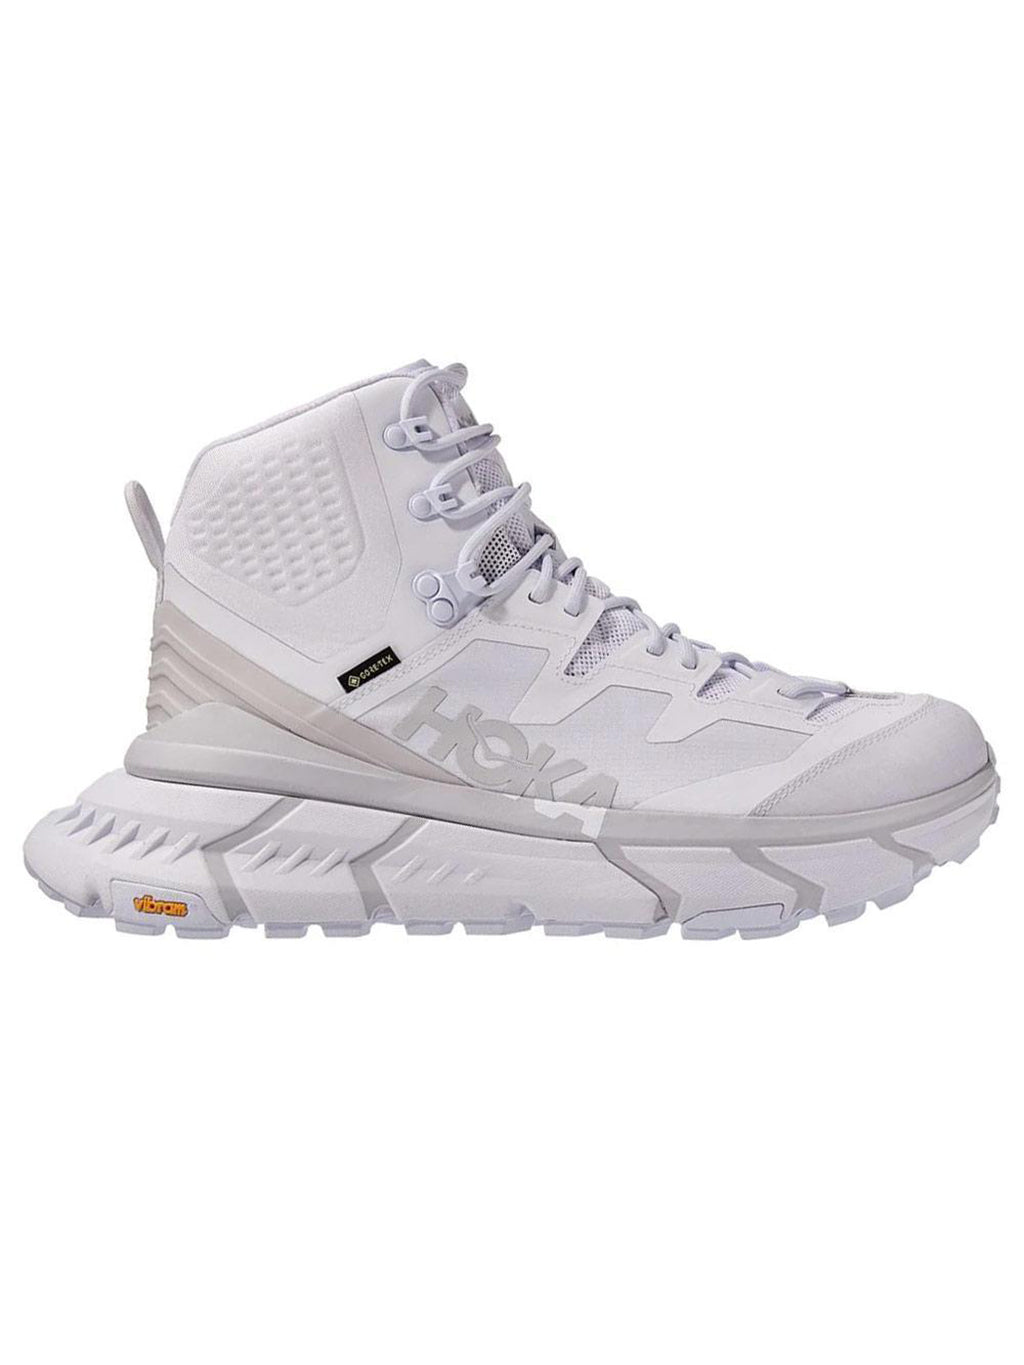 White & Nimbus Cloud Tennine Hike Shoes